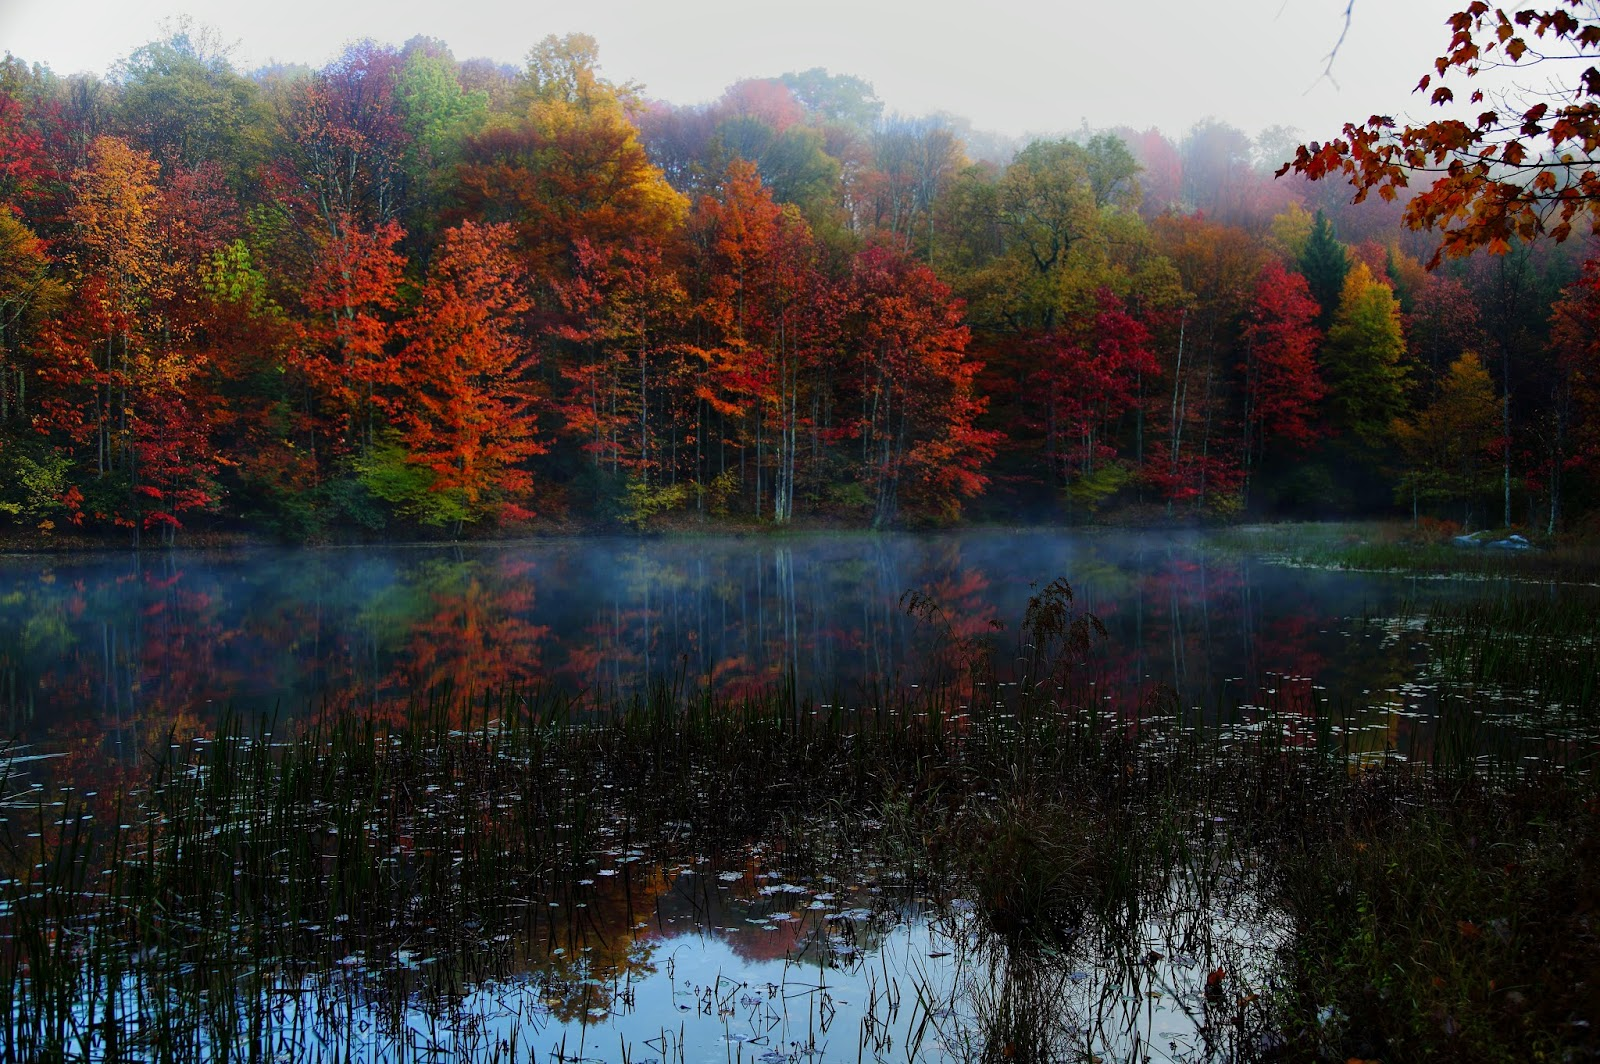 Early morning fog slowly drifts across Summit Lake in the mountains of West Virginia on a cool Autumn morning. The colorful fall foliage is beginning to awake as the water reflects from the glassy still lake waters.  Picture Height: 3566 pixels Picture Width: 5363 pixels Lens Aperture: f/4 Image Exposure Time: 1/10 sec Lens Focal Length mm: 32 mm Photo Exposure Value: 1 EV Camera Model: Canon EOS 5D Mark II Photo White Balance: 0 Color Space: sRGB ForestWander Nature Photography: ForestWander.com ForestWander: ForestWander Nature Photography